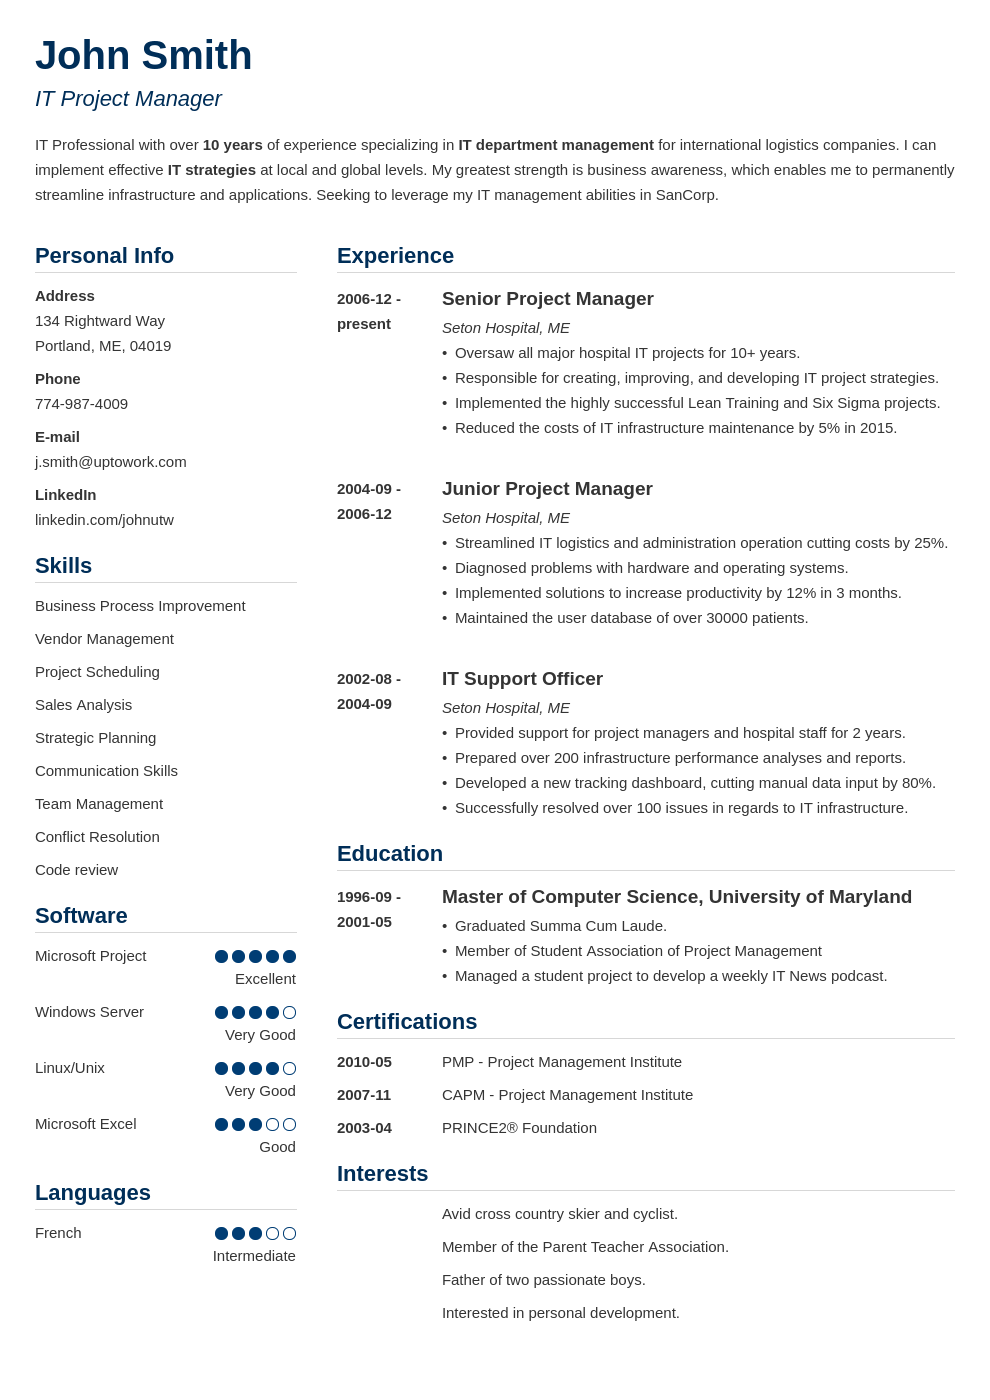 Genial US Recommended Professional Resume Template Simple